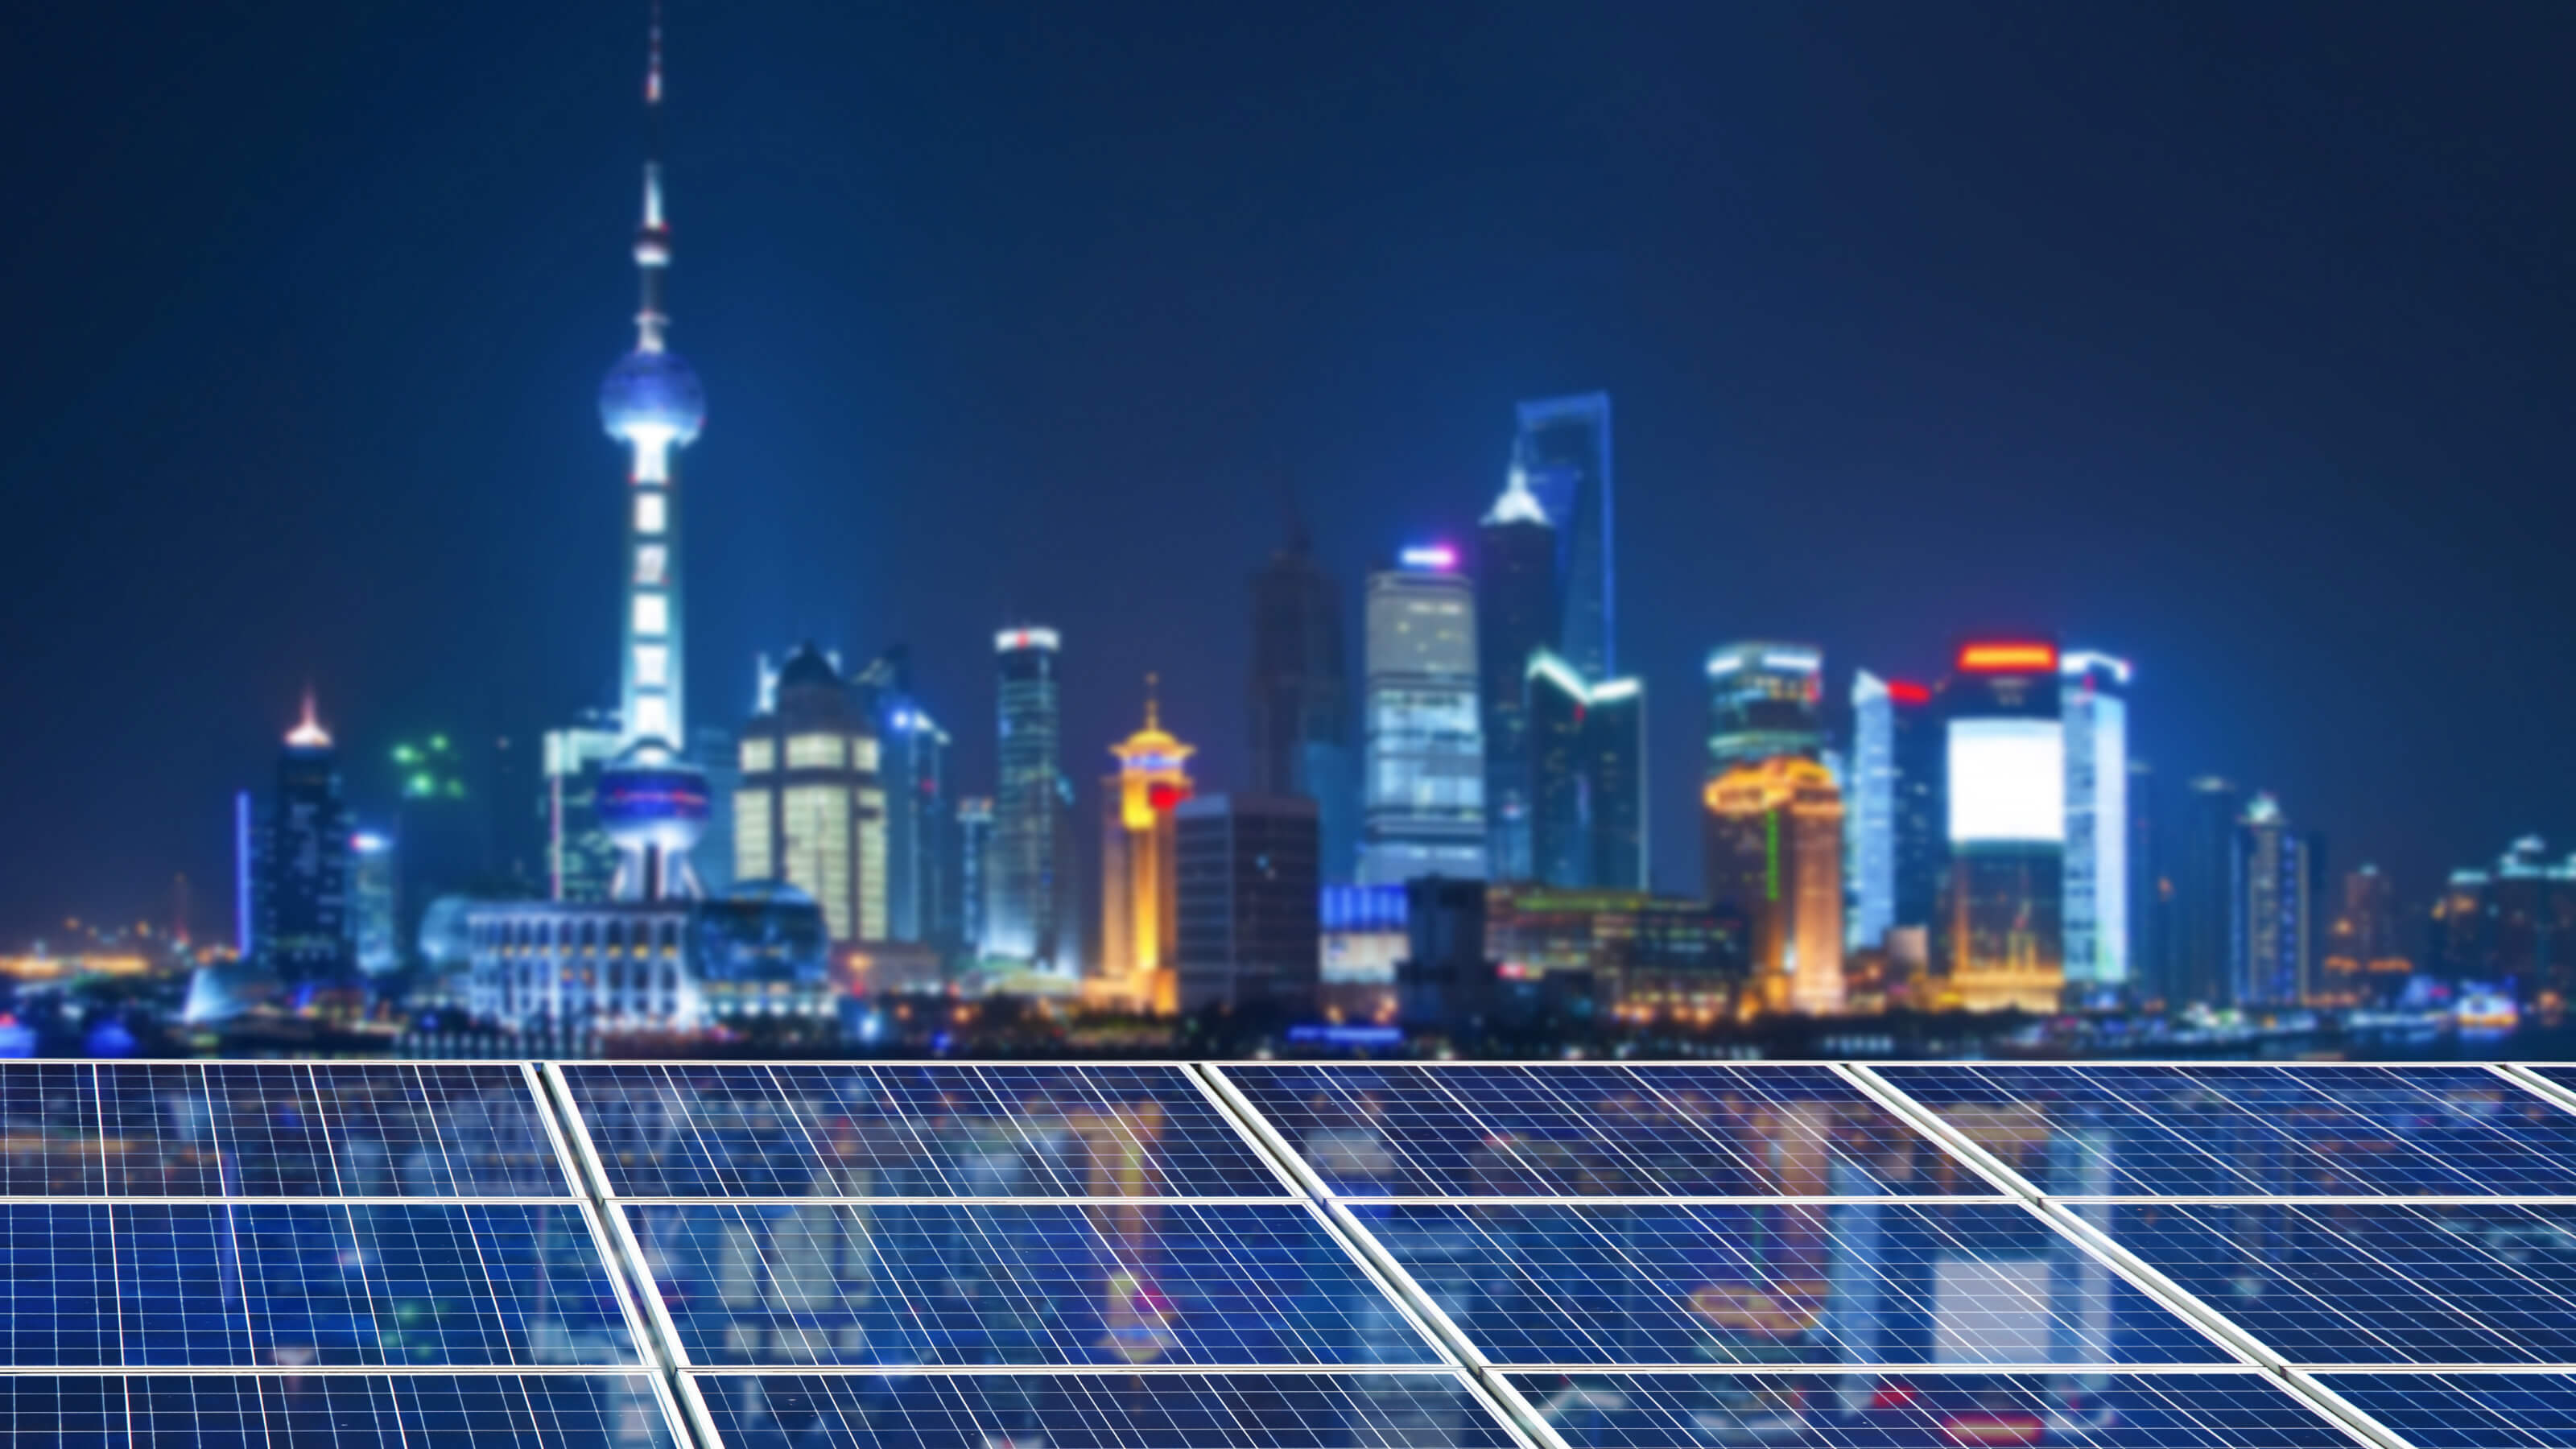 Image of Shanghai skyline with solar panels in front